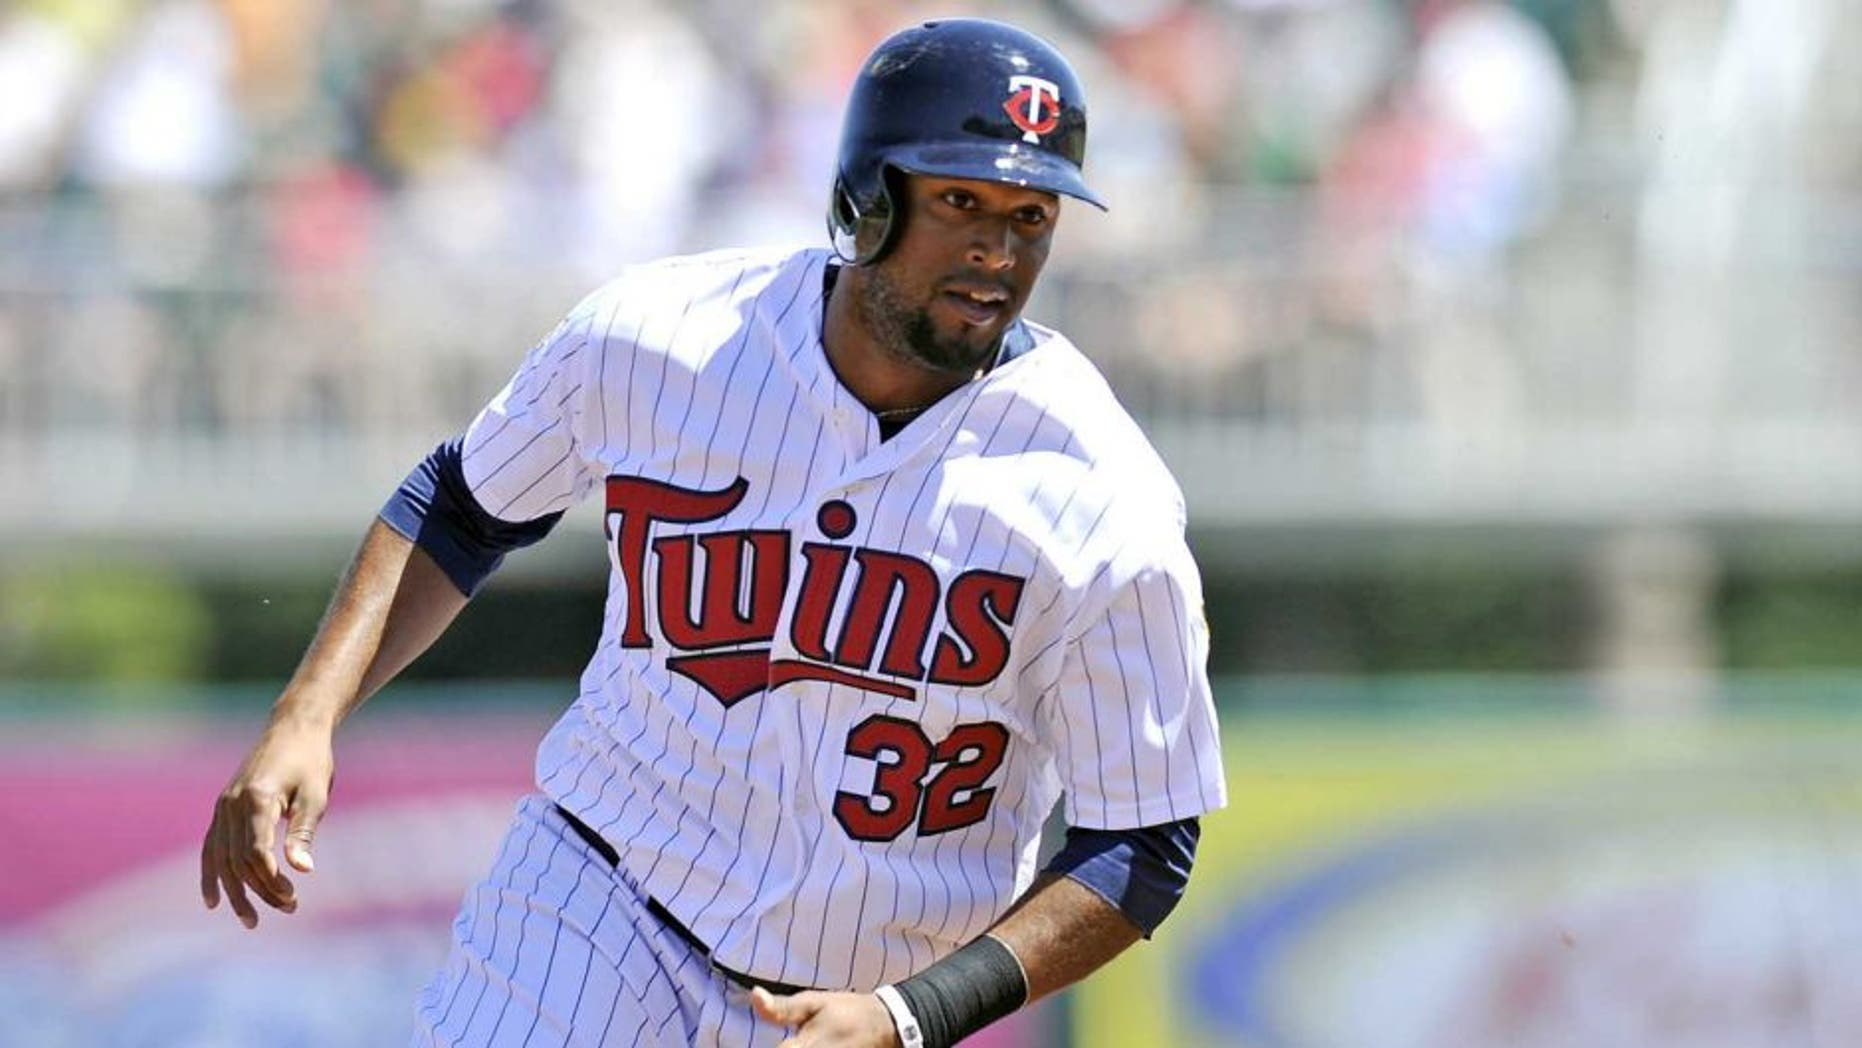 March 13, 2014: Minnesota Twins center fielder Aaron Hicks rounds third base during a game against the Boston Red Sox at Hammond Stadium.